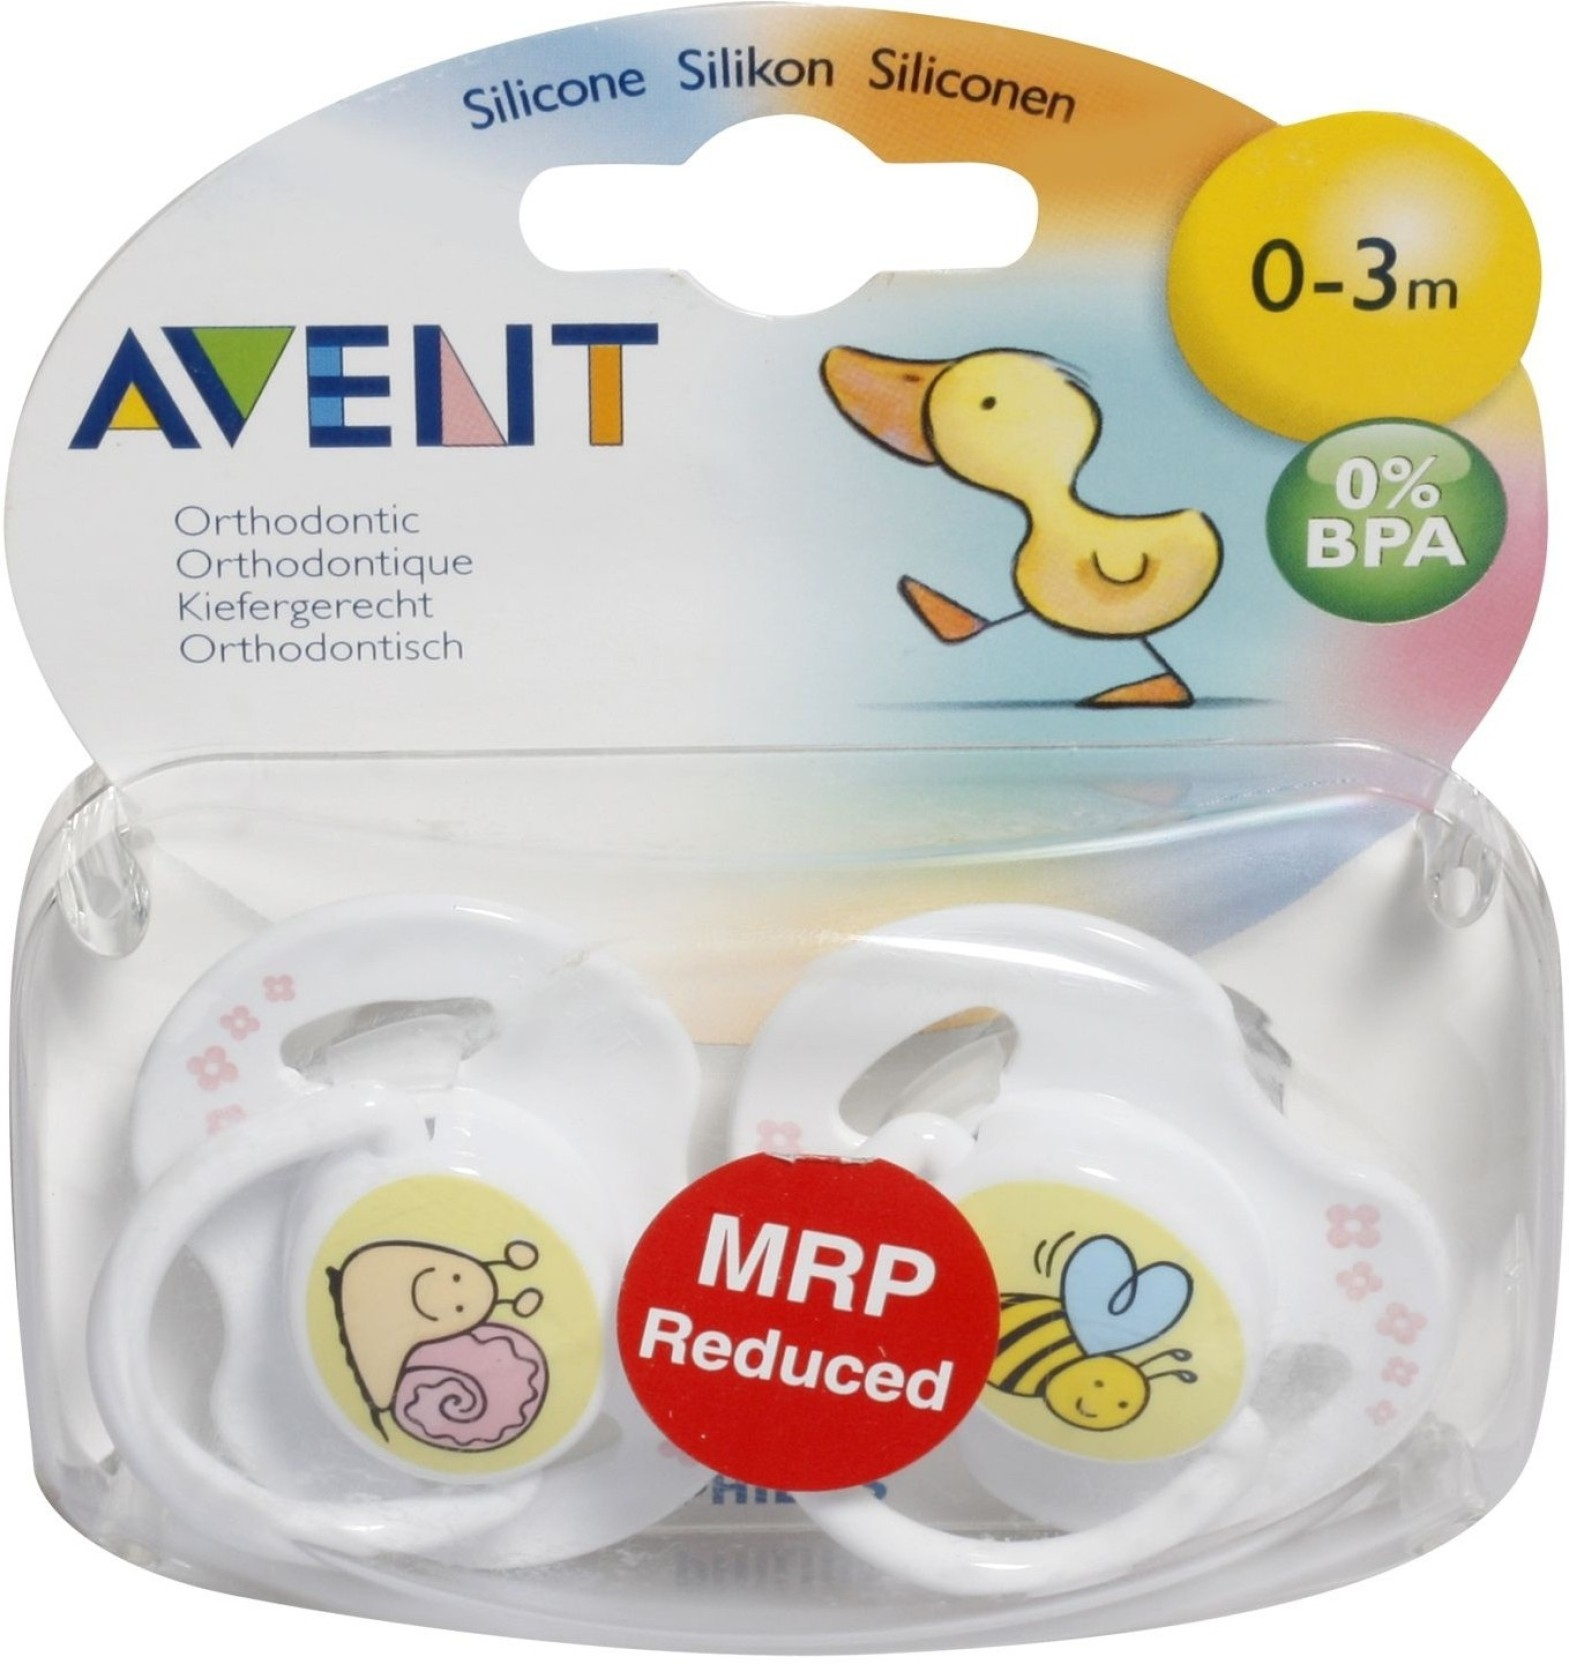 Buy Philips Avent Soother For 0 3 Months Baby In India Single Freeflow 6m White Fashion Pacifiers Share